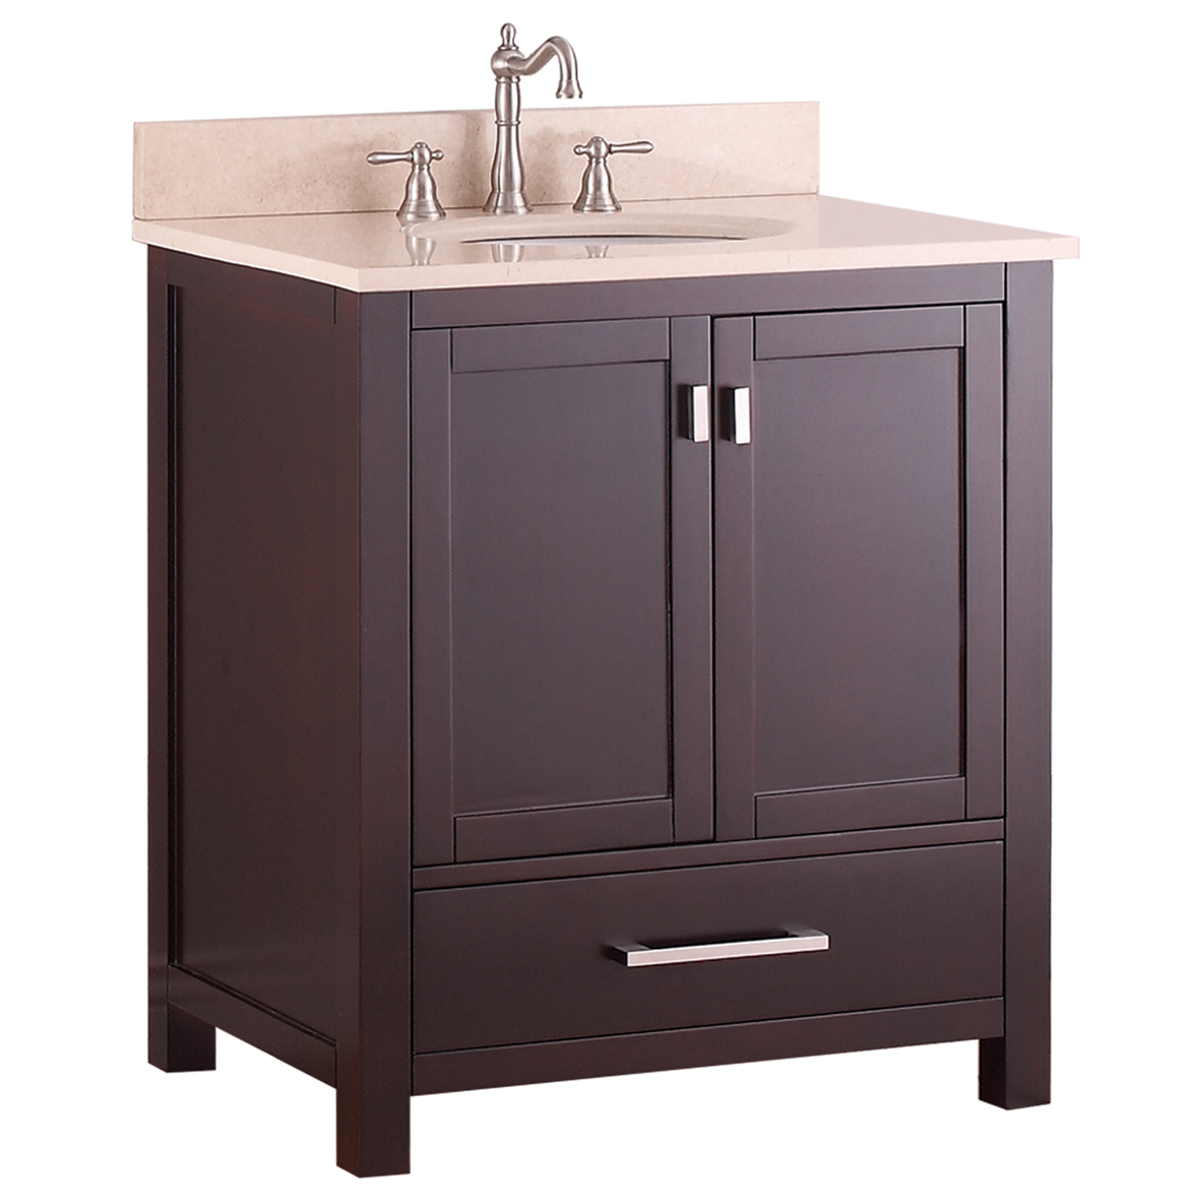 "31"" Toscana Single Bath Vanity - Espresso with Galala Beige Marble Top"